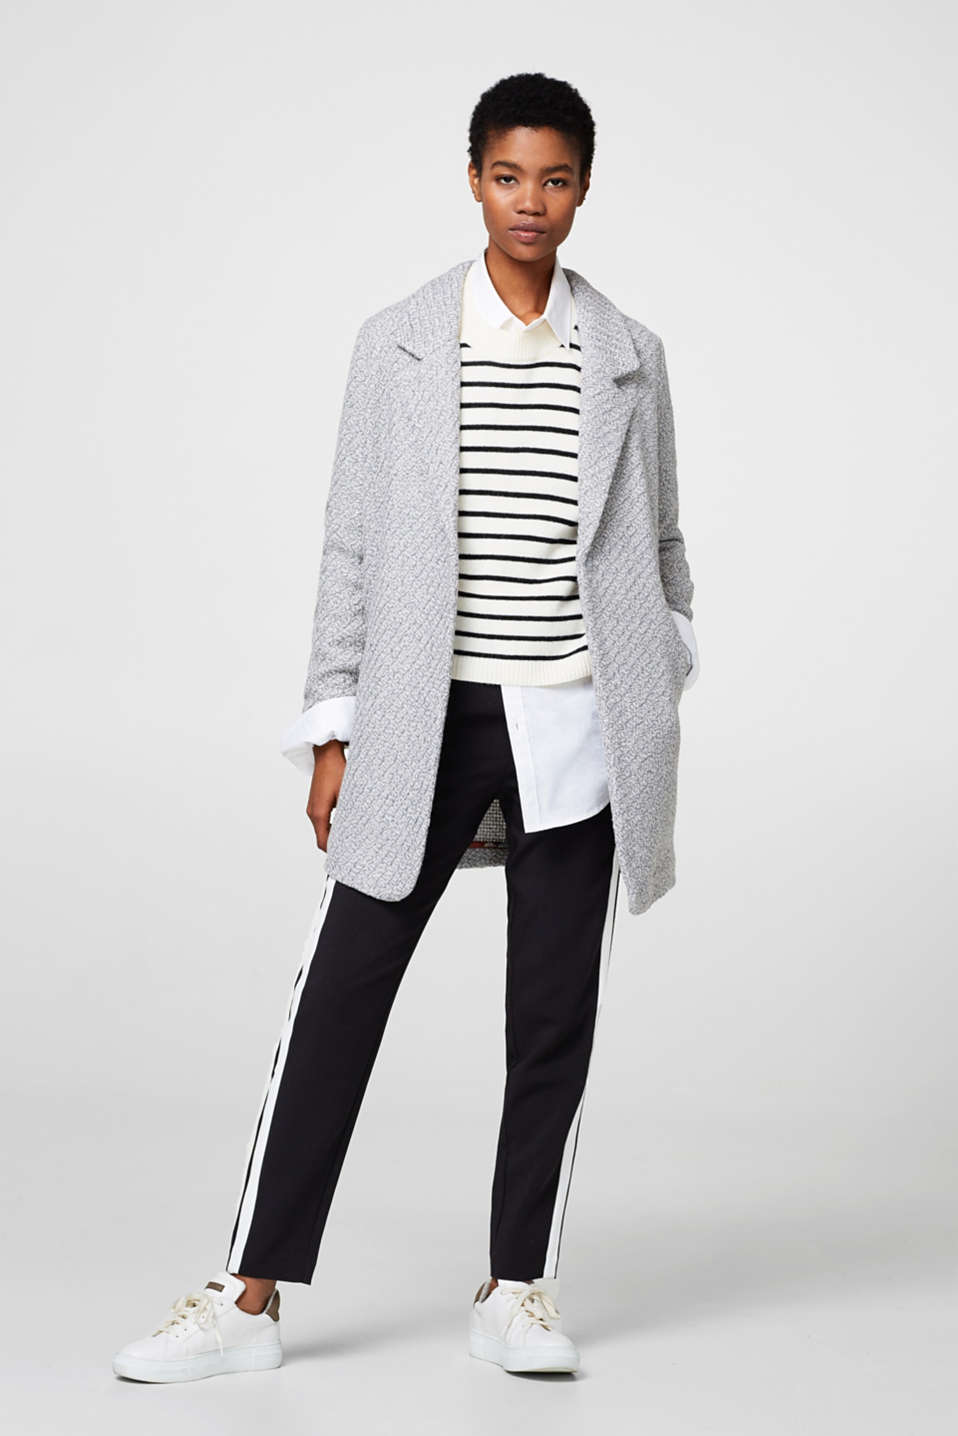 Woven stretch trousers with tuxedo stripes